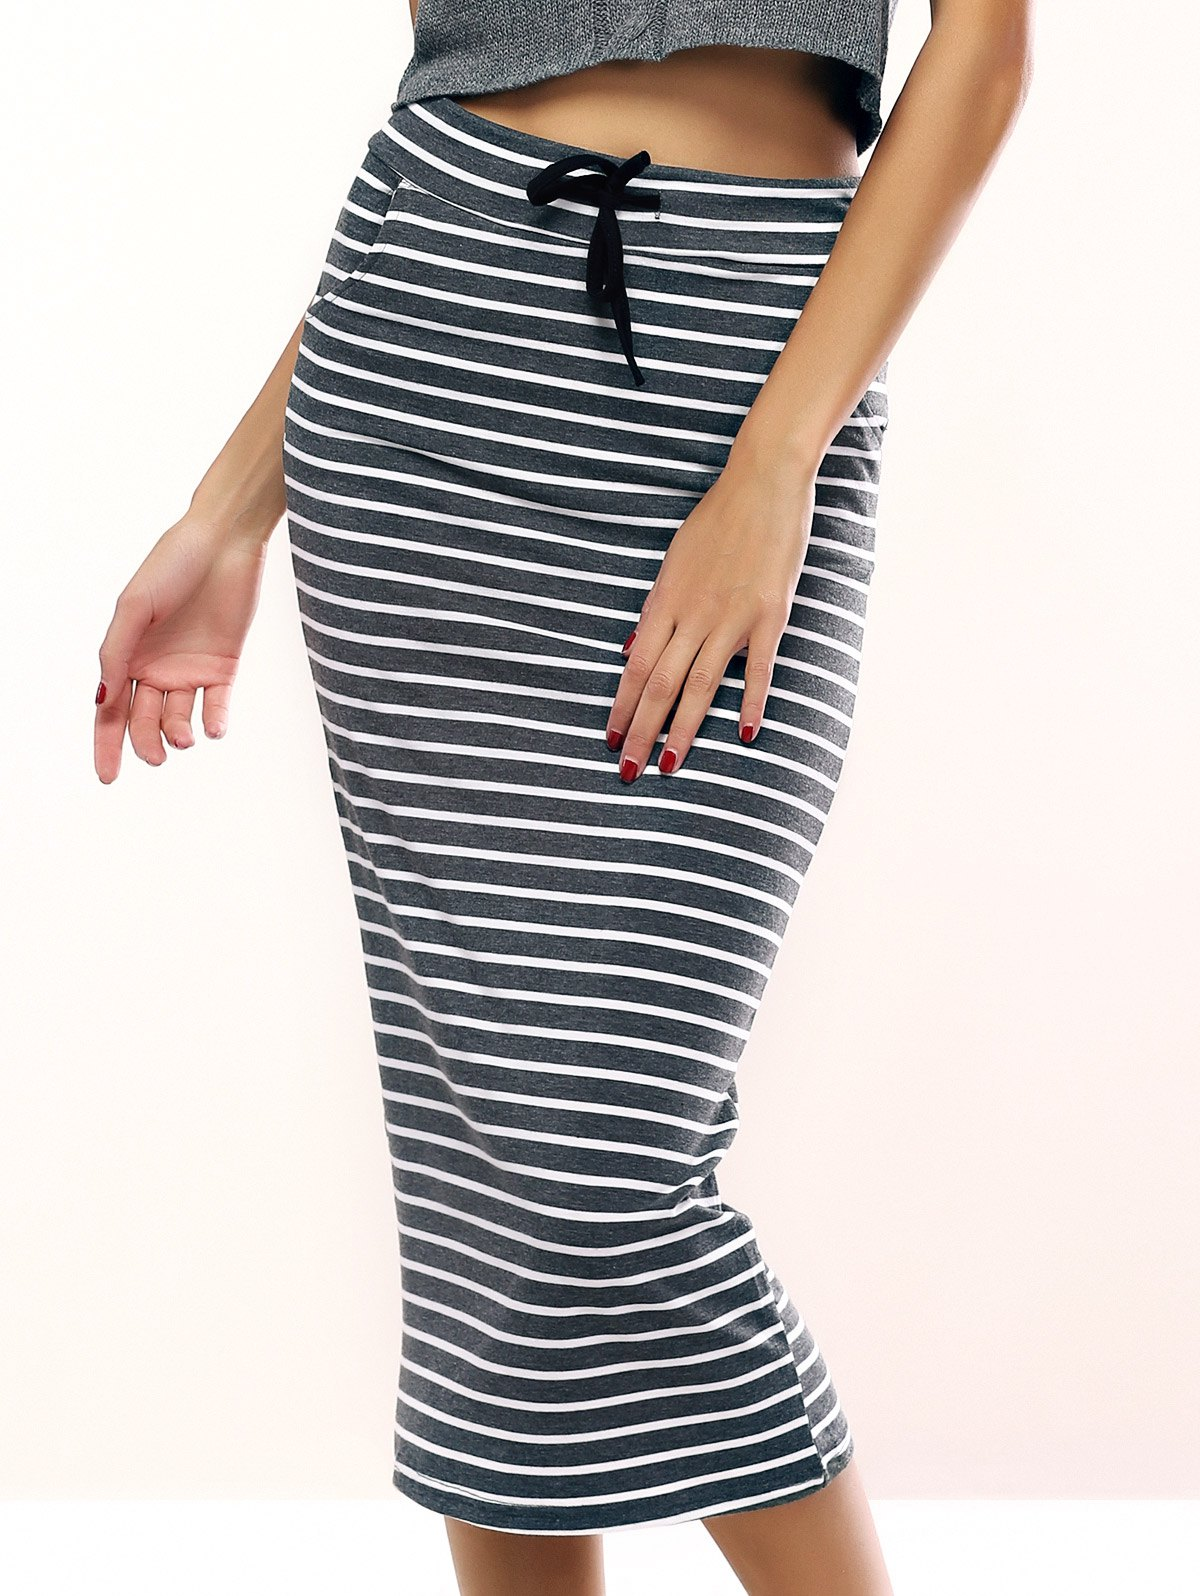 Brief Drawstring Striped Skirt For Women - GREY/WHITE ONE SIZE